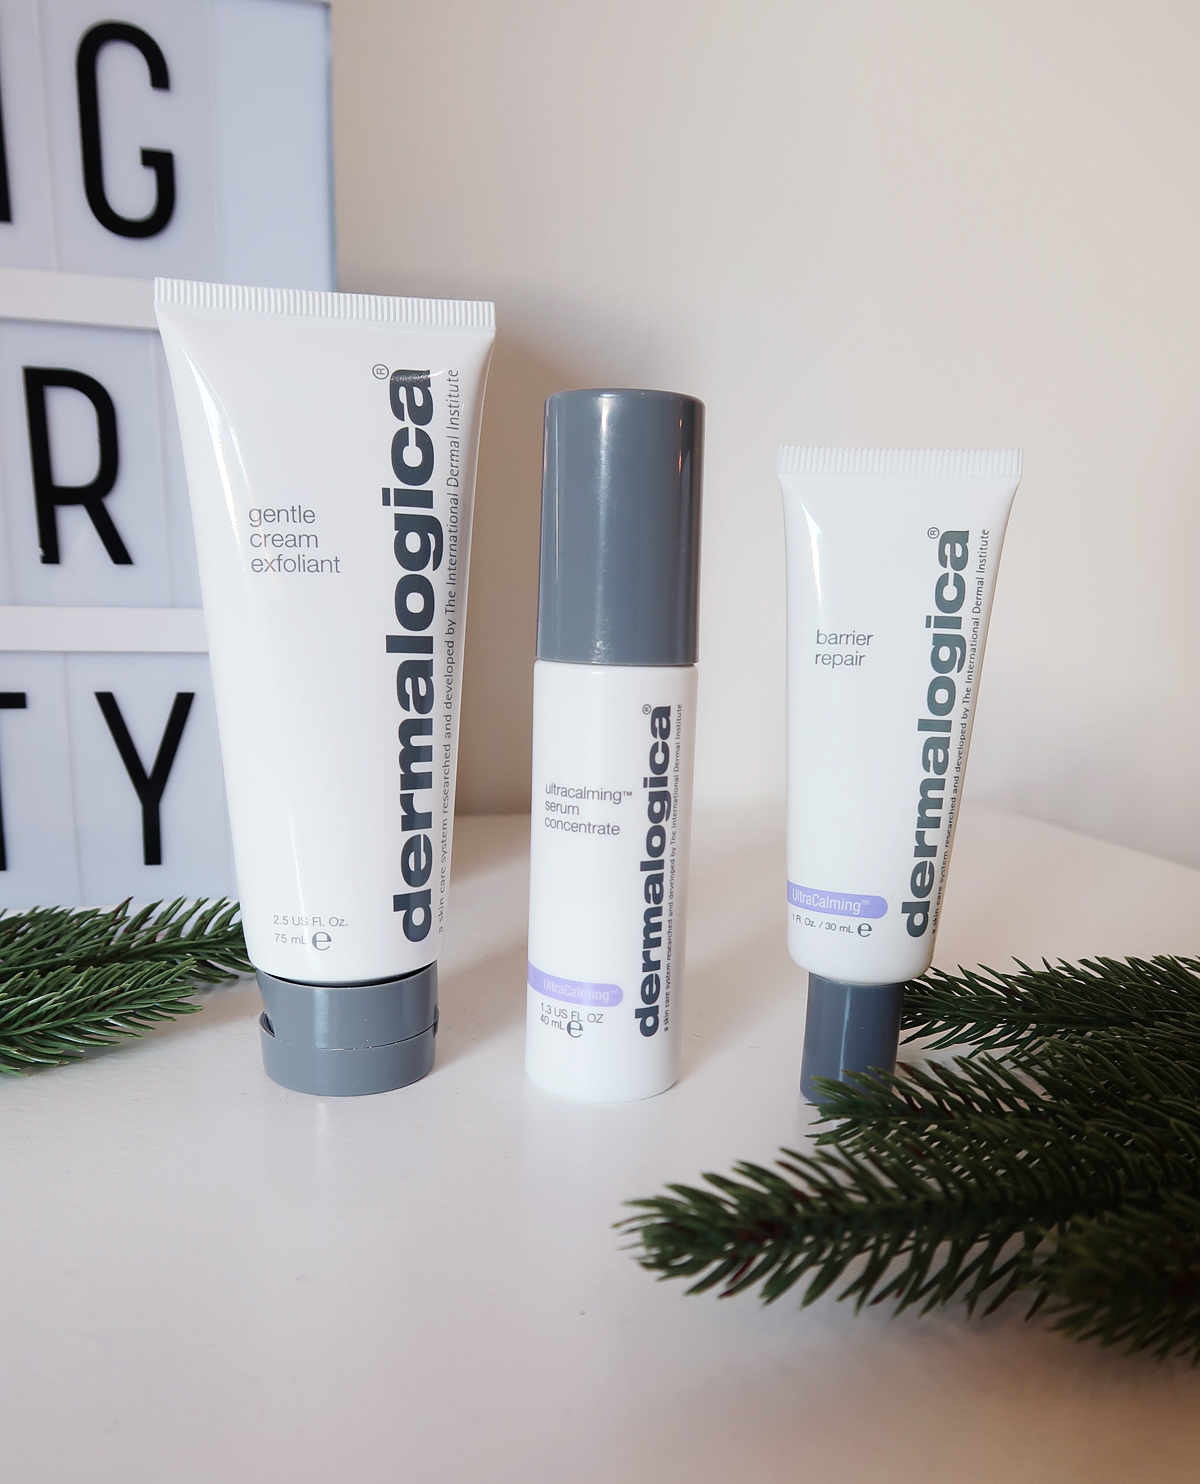 Dermalogica gentle gream exfoliant ultacalming serum concentrate barrier repair